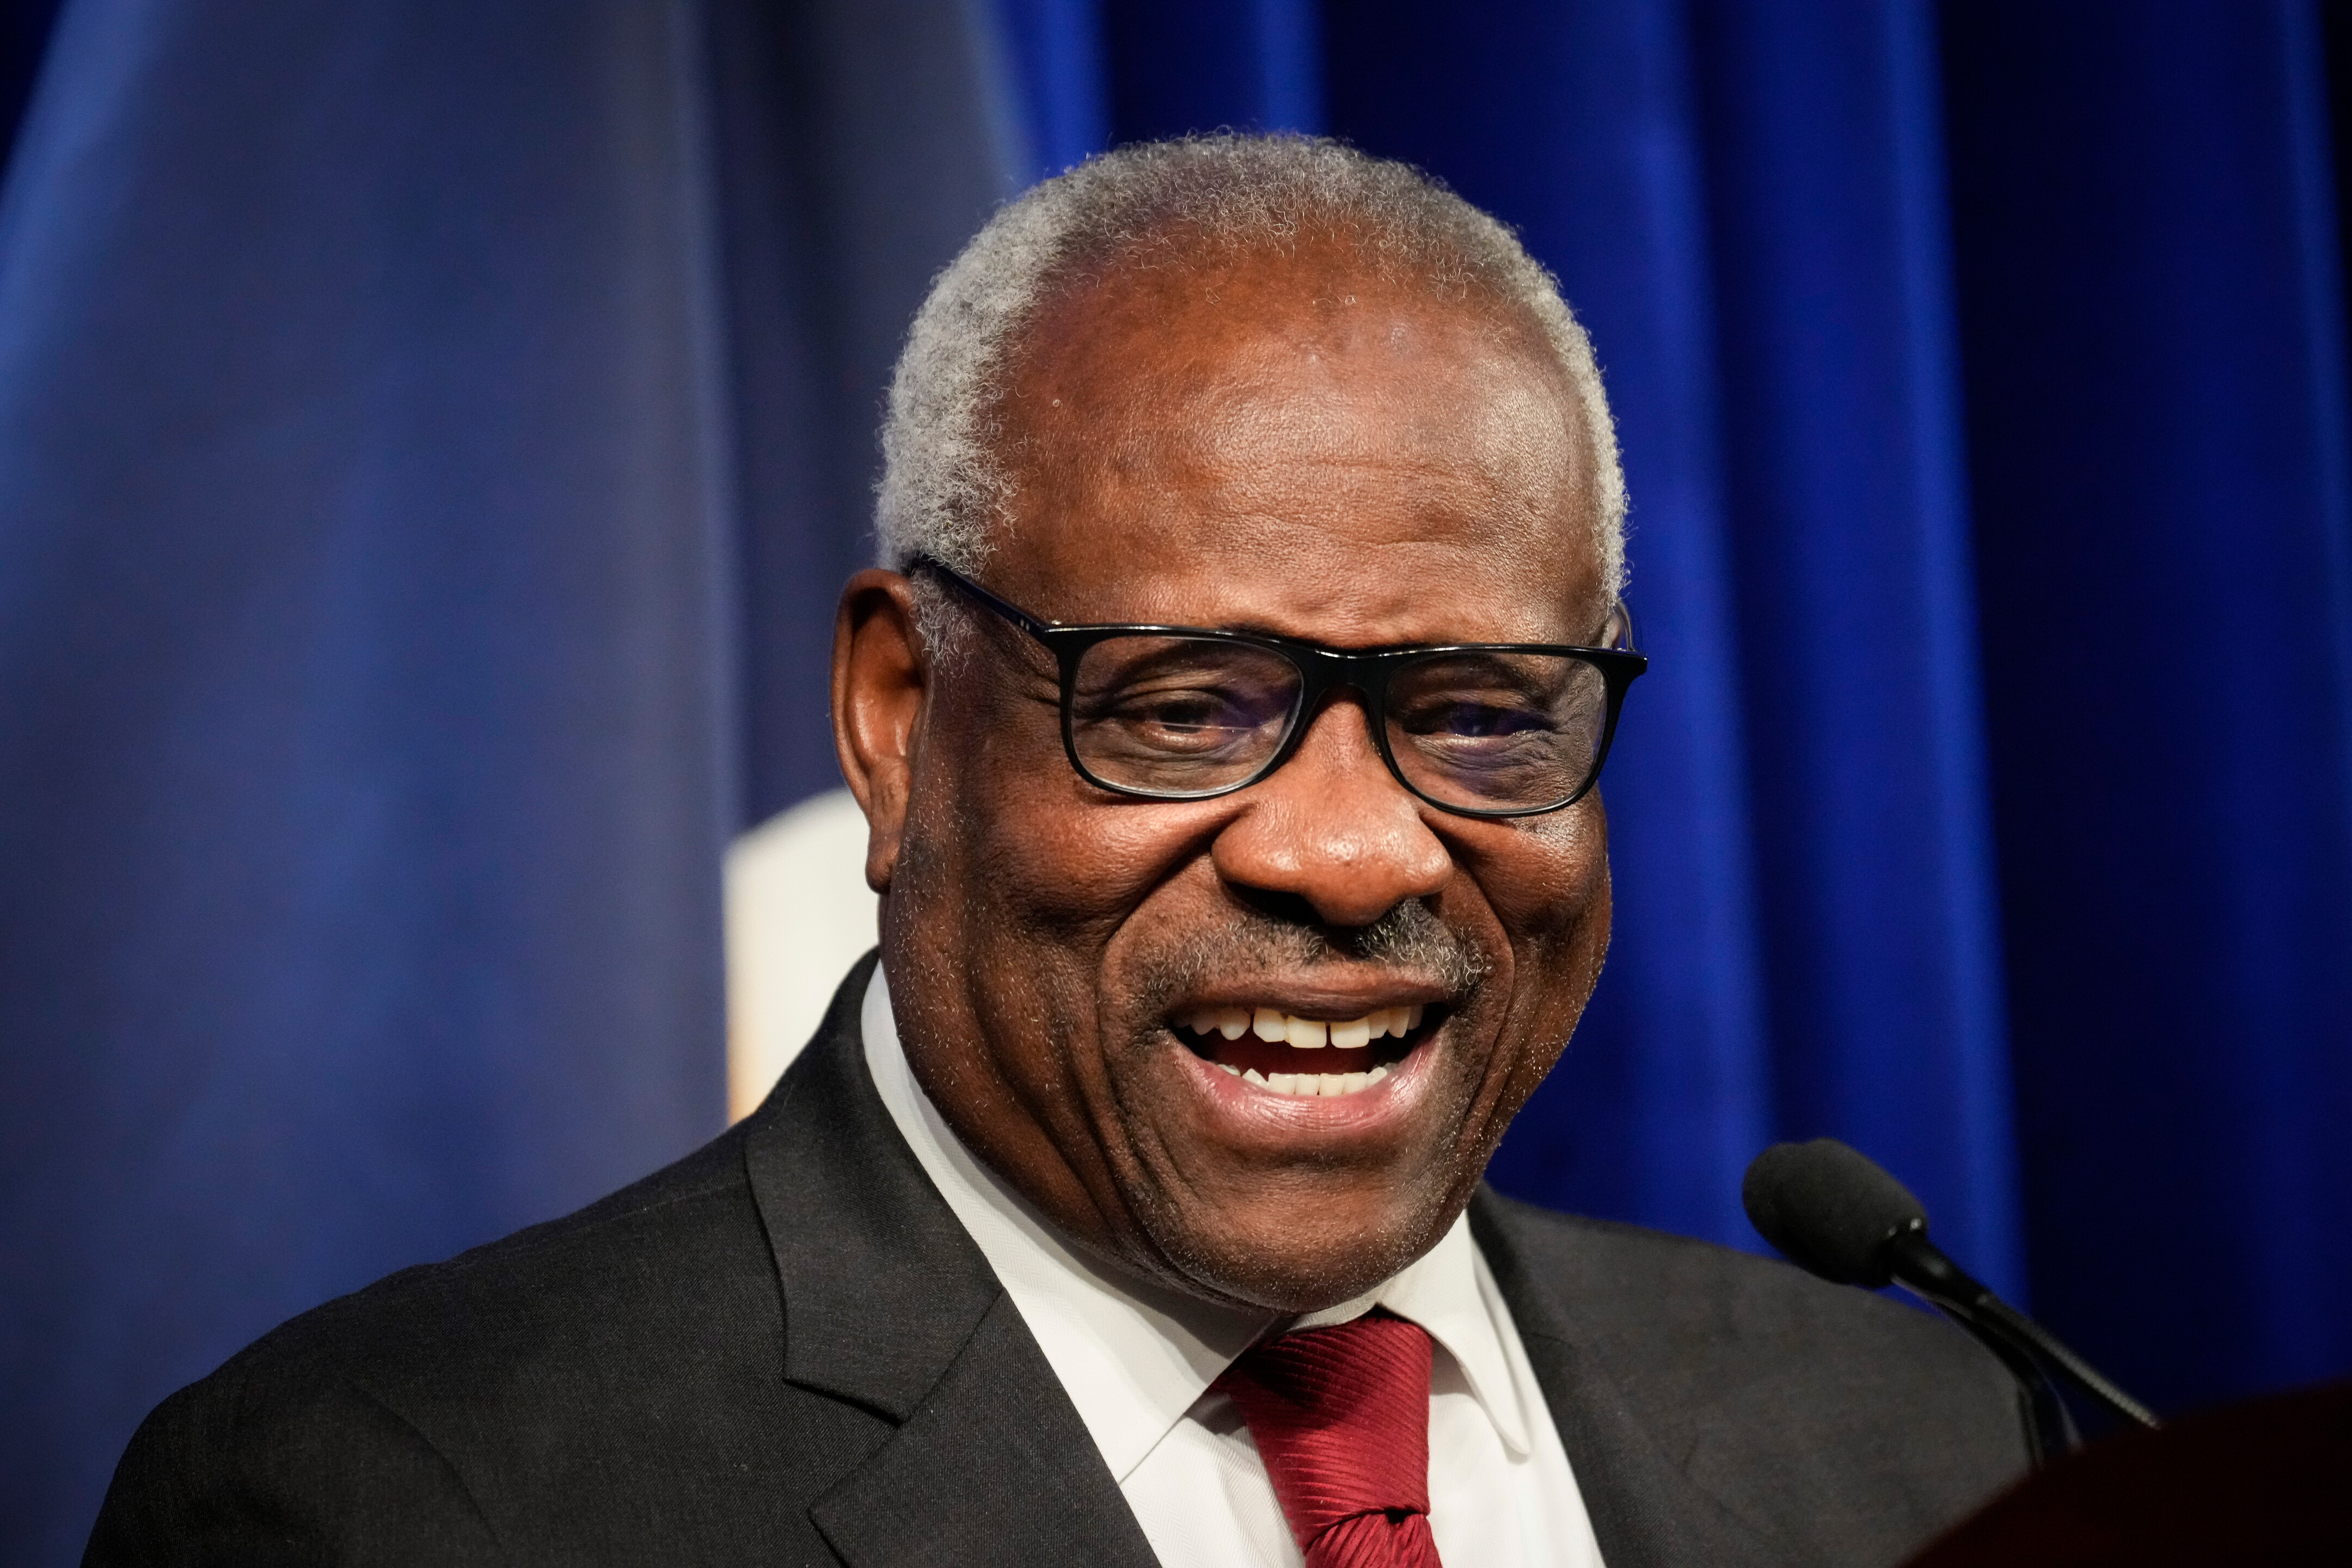 Clarence Thomas at the Supreme Court through the years, in his own words